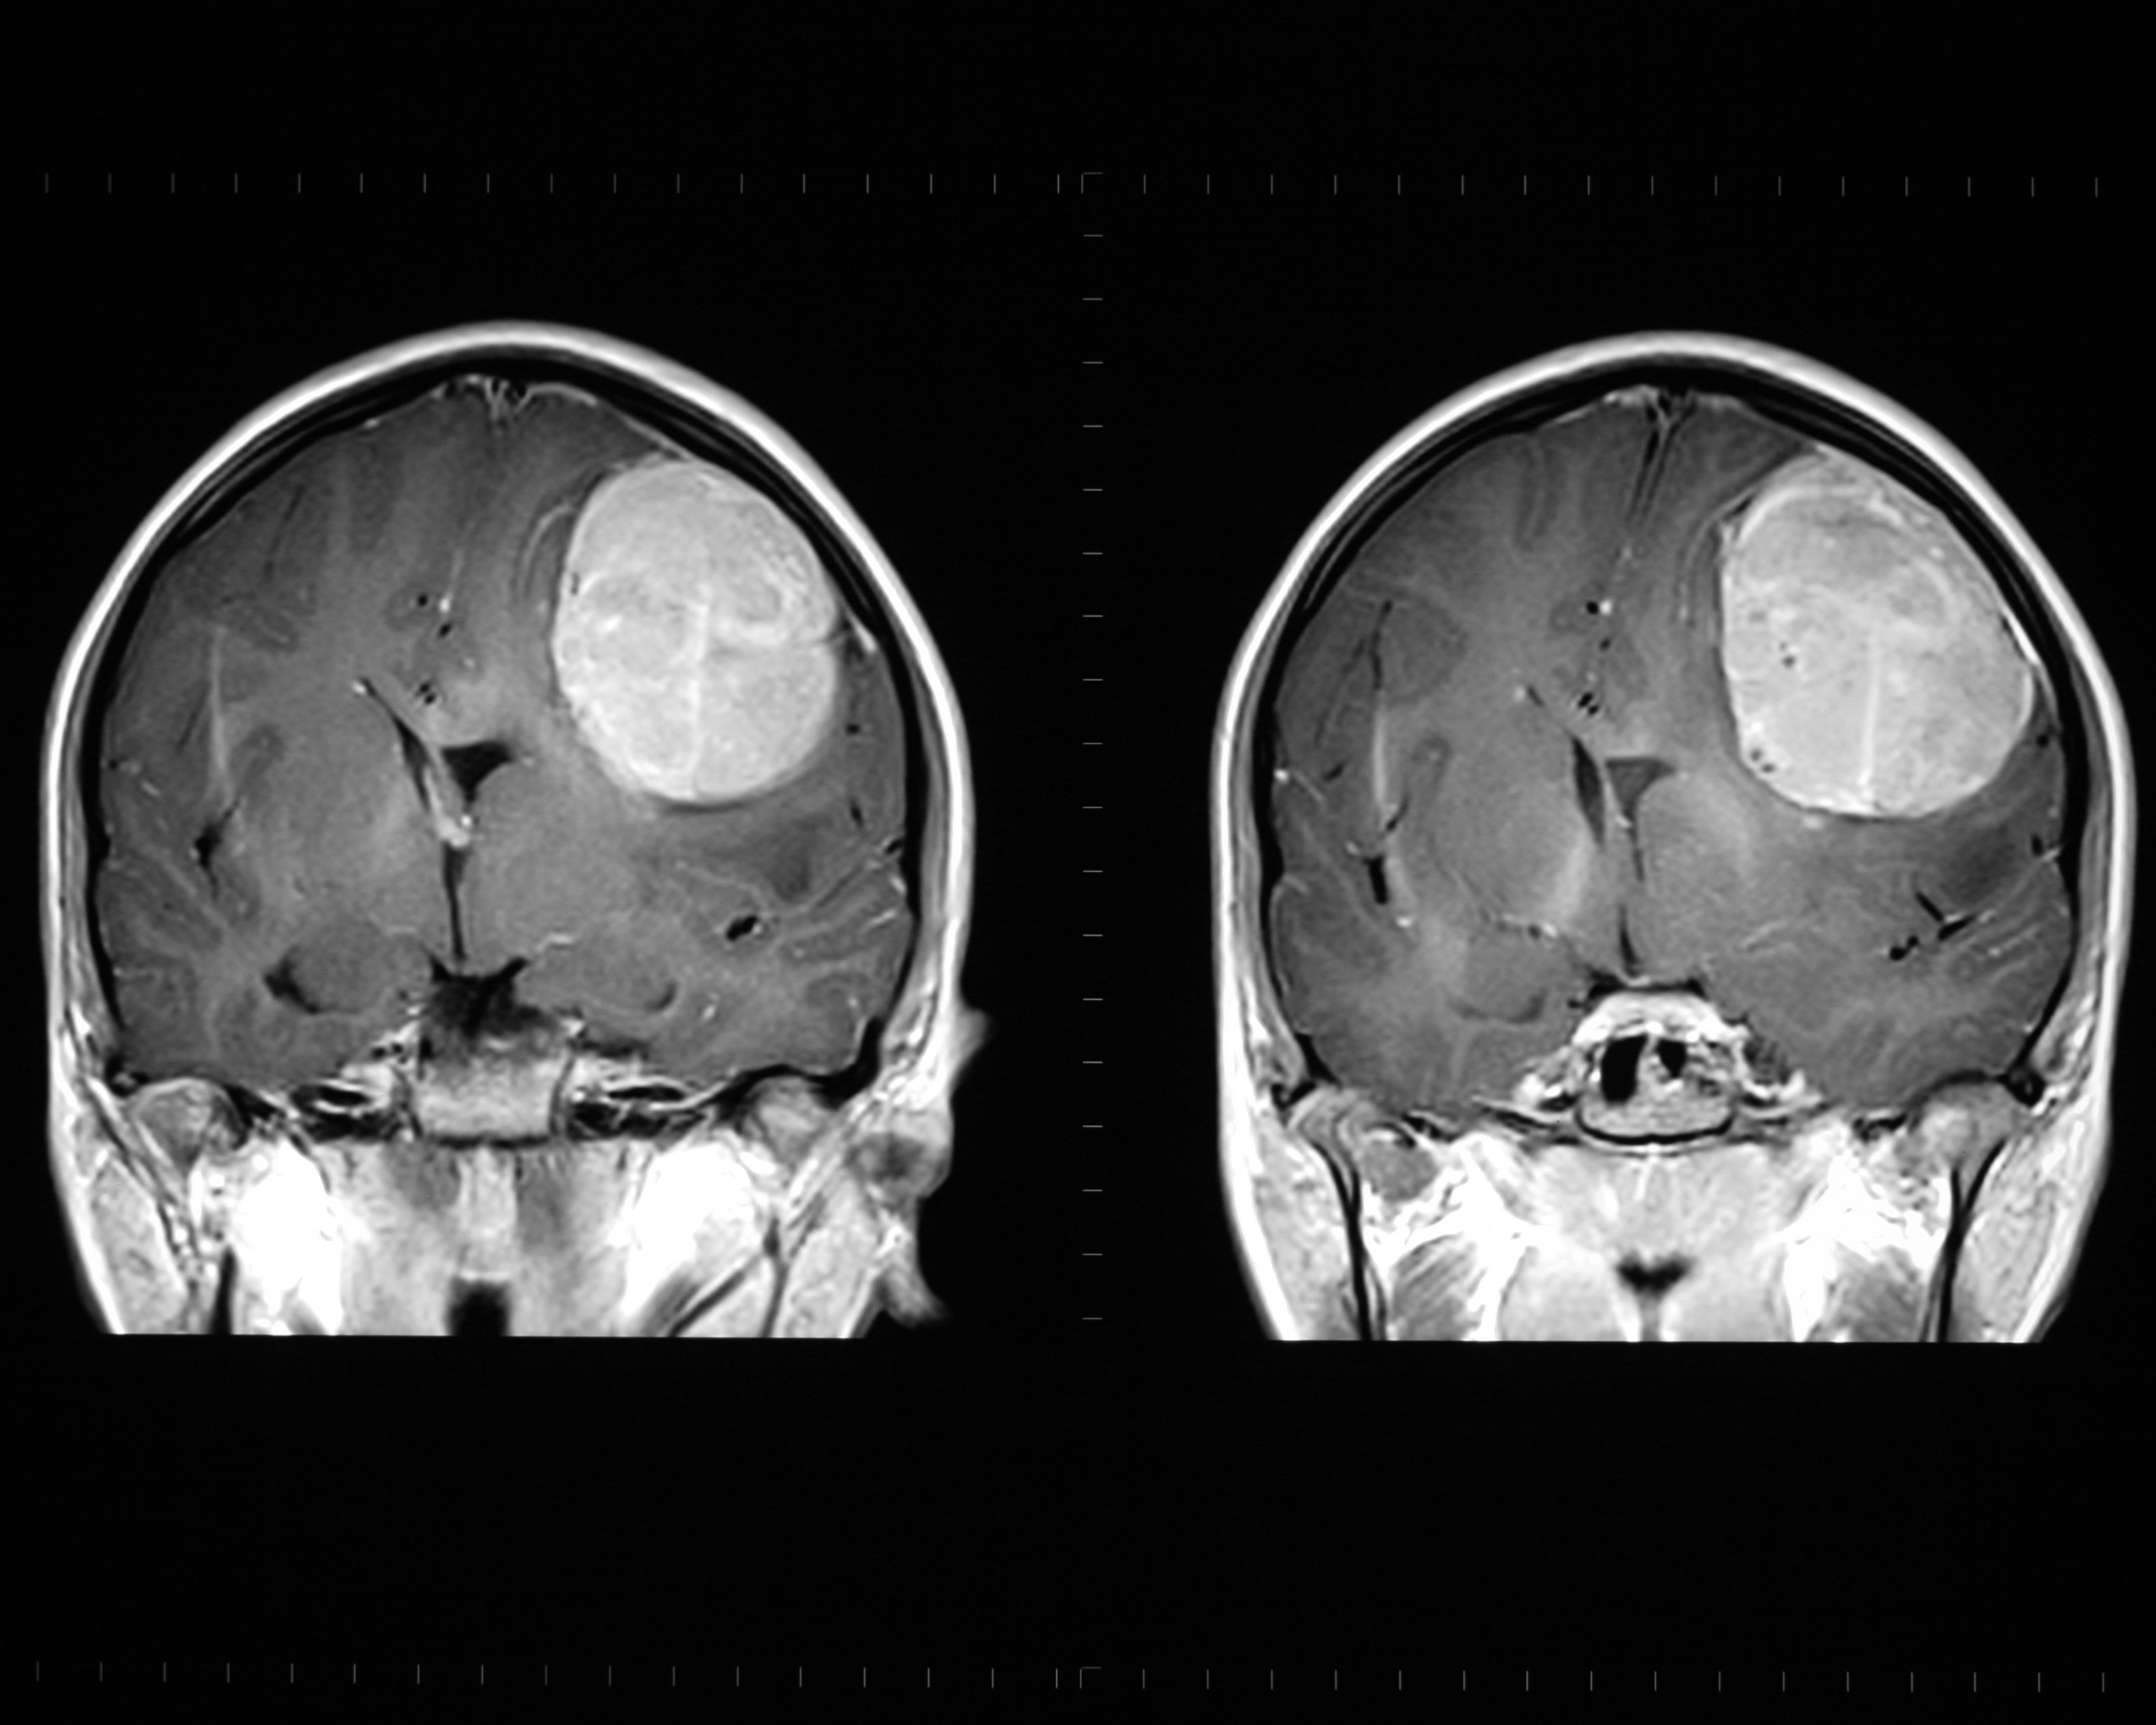 What symptoms are typically associated with brain cancer?